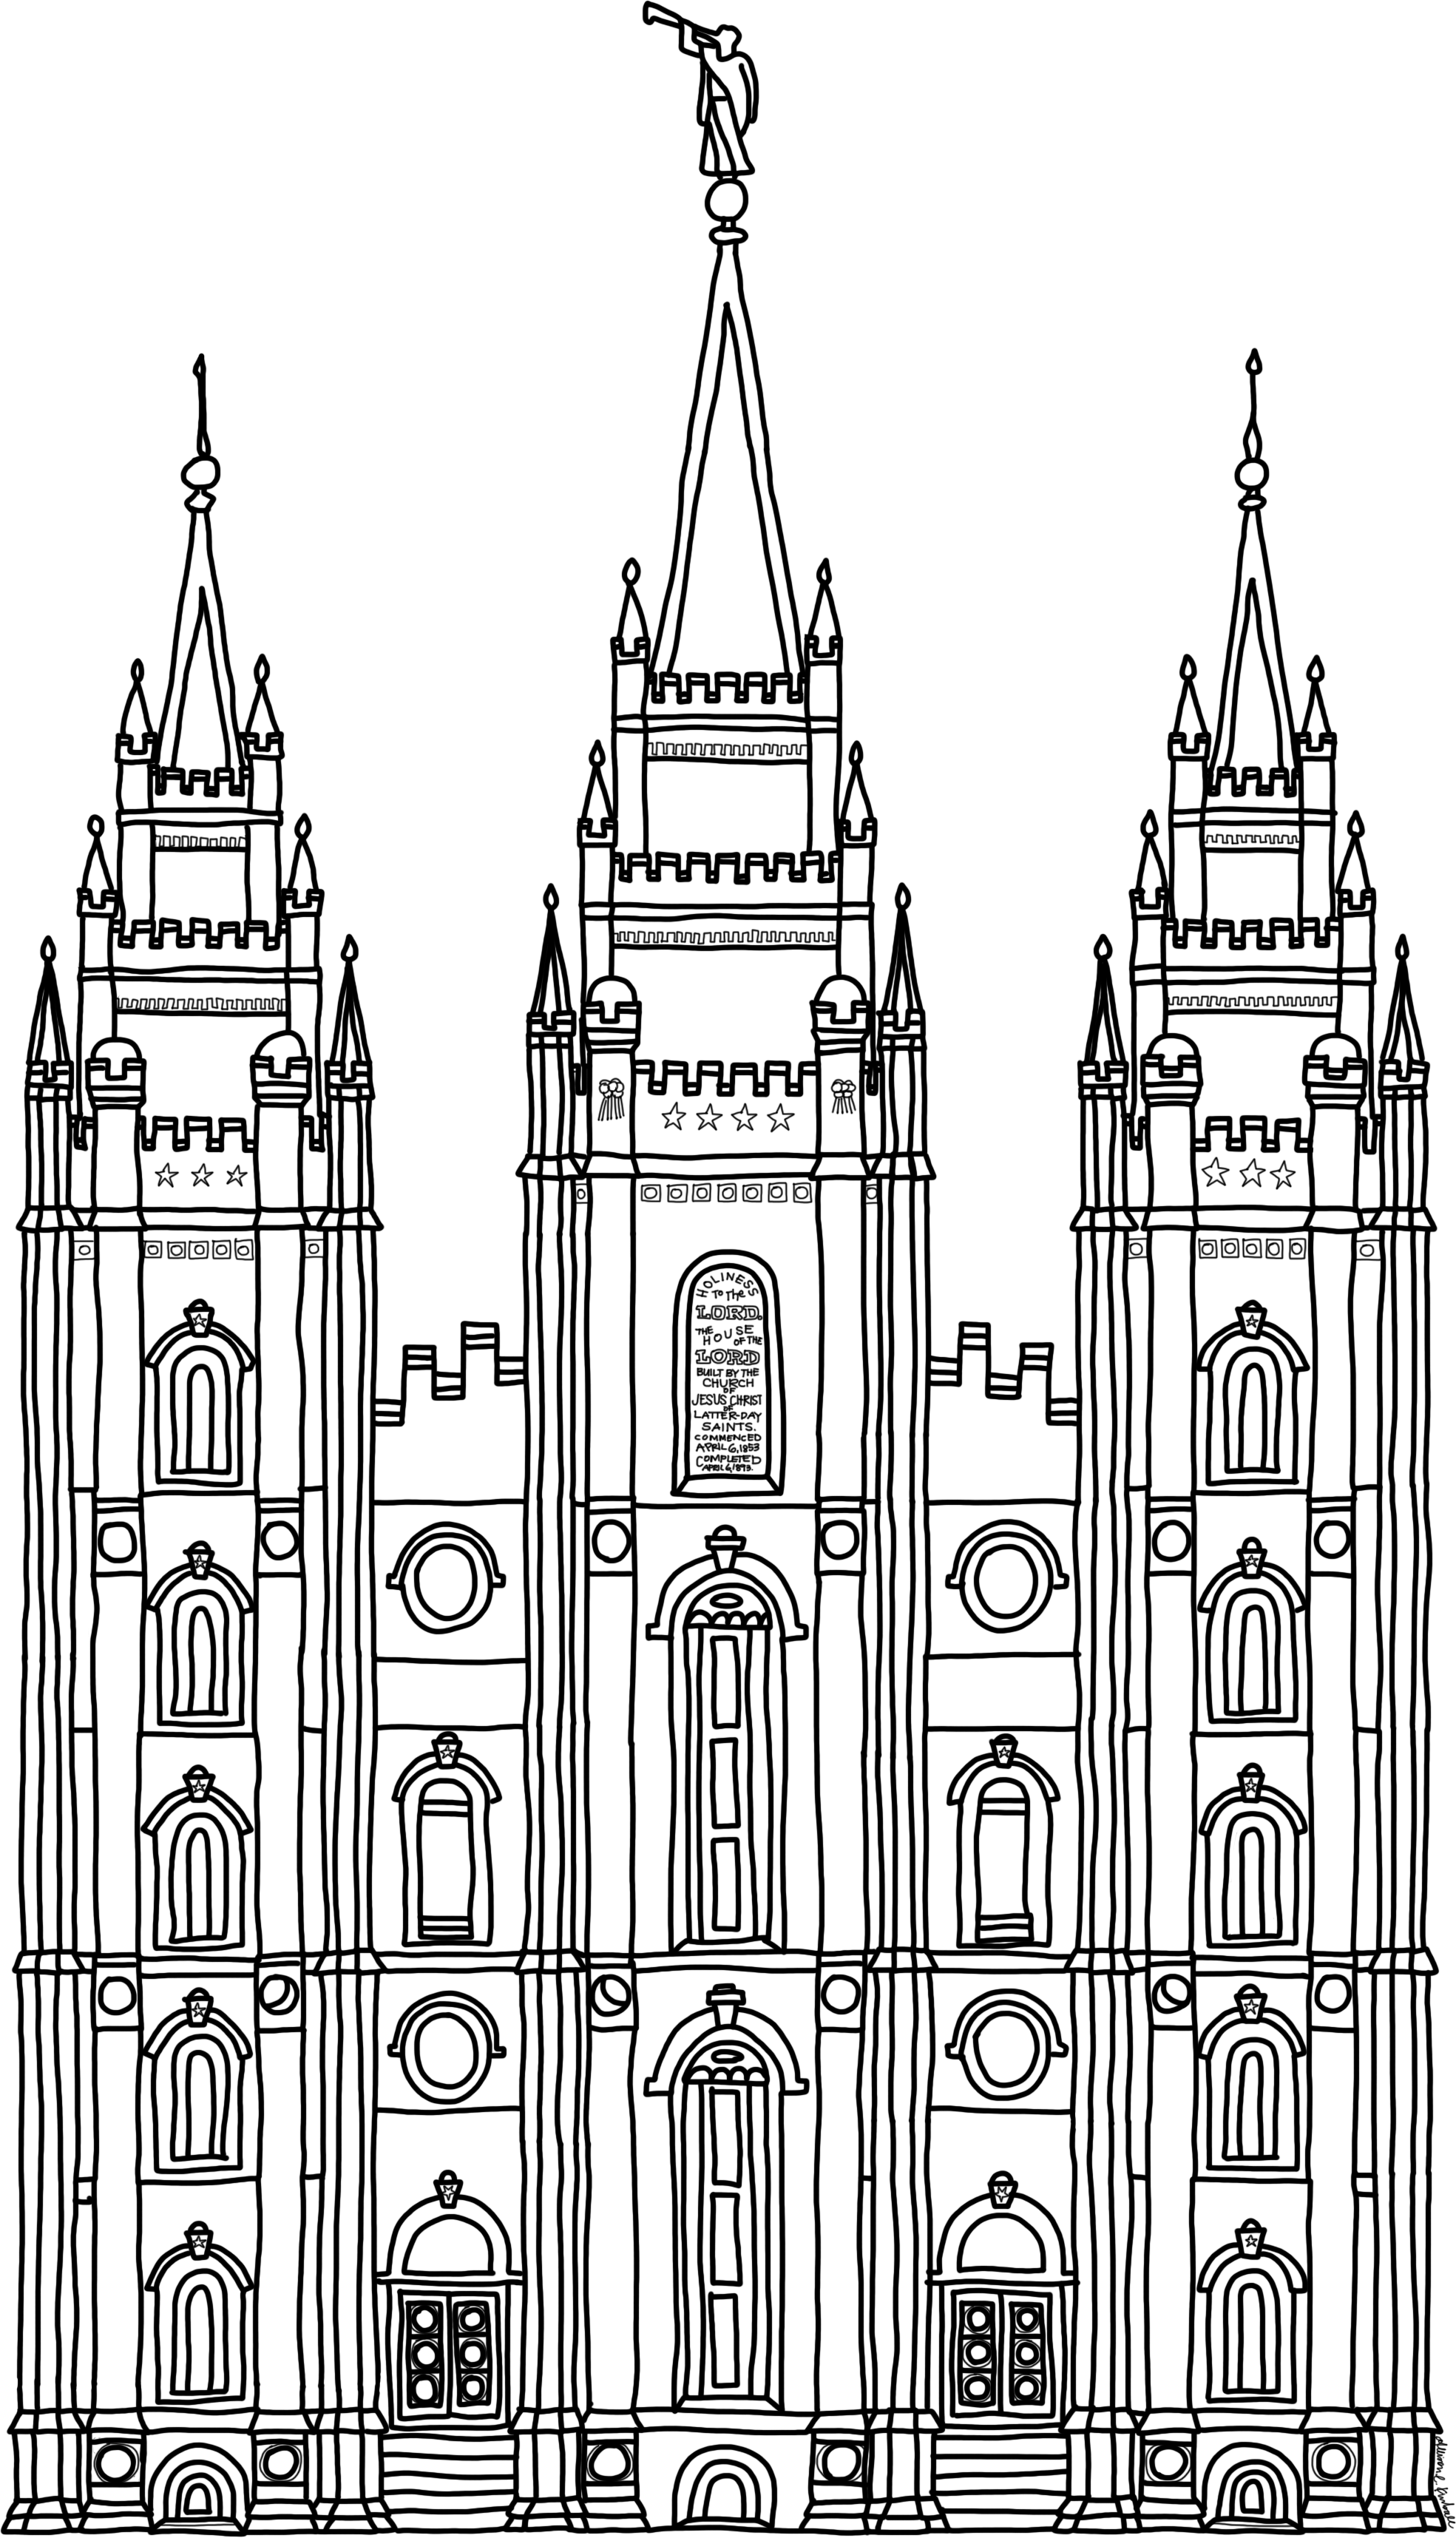 ... Salt Lake Temple u0026middot; Download Akimball Saltlaketemple Png This Is Approximately 6 5 X 11